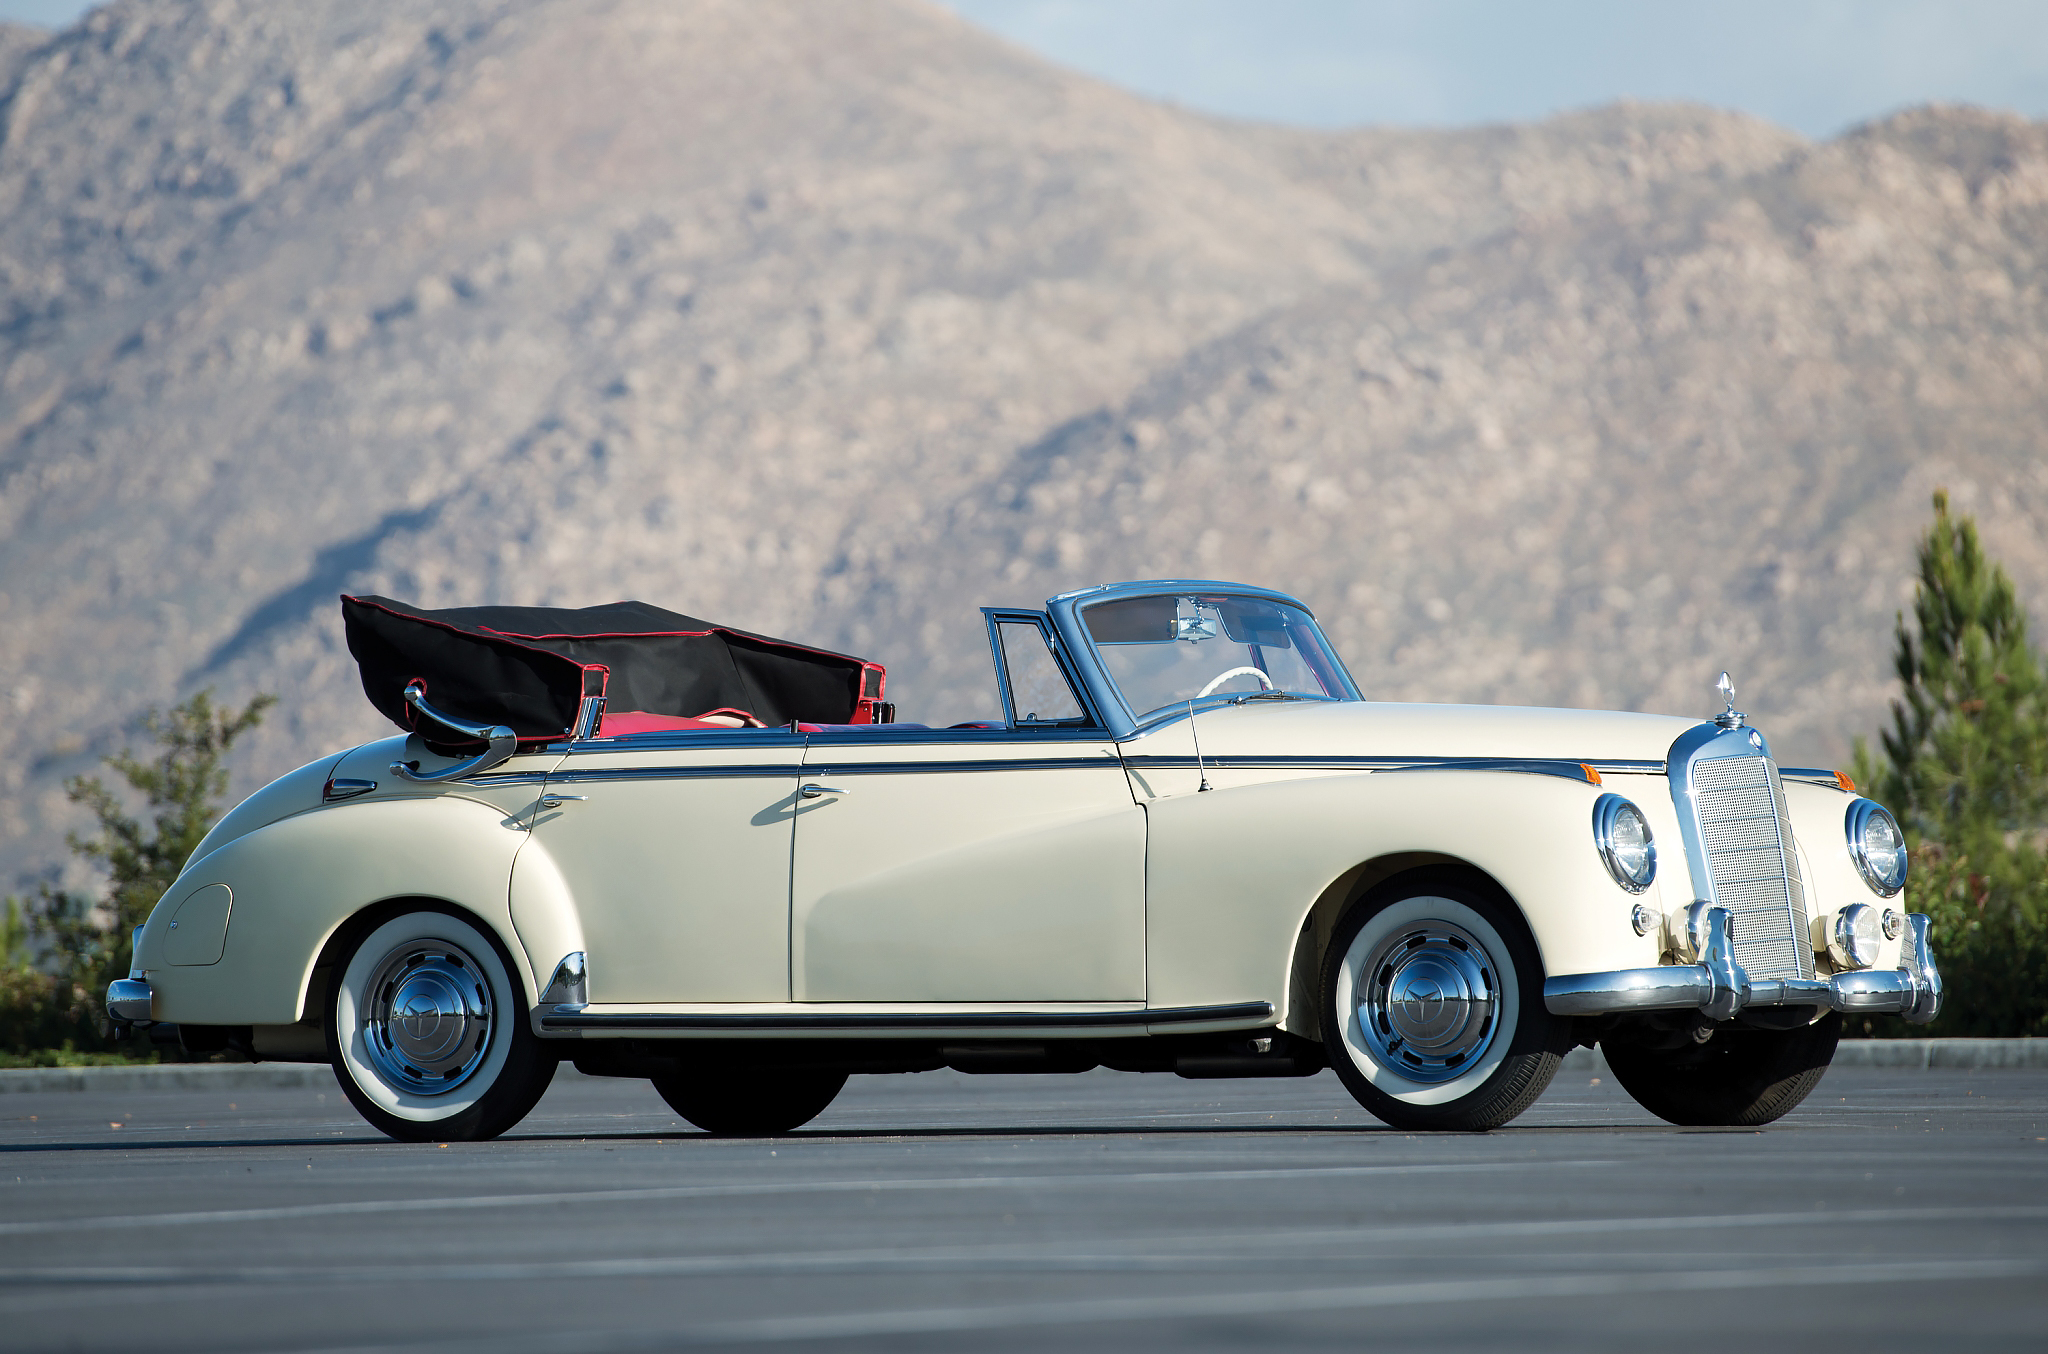 Nce custom convertibles automotive design engineering for Mercedes benz 300 convertible